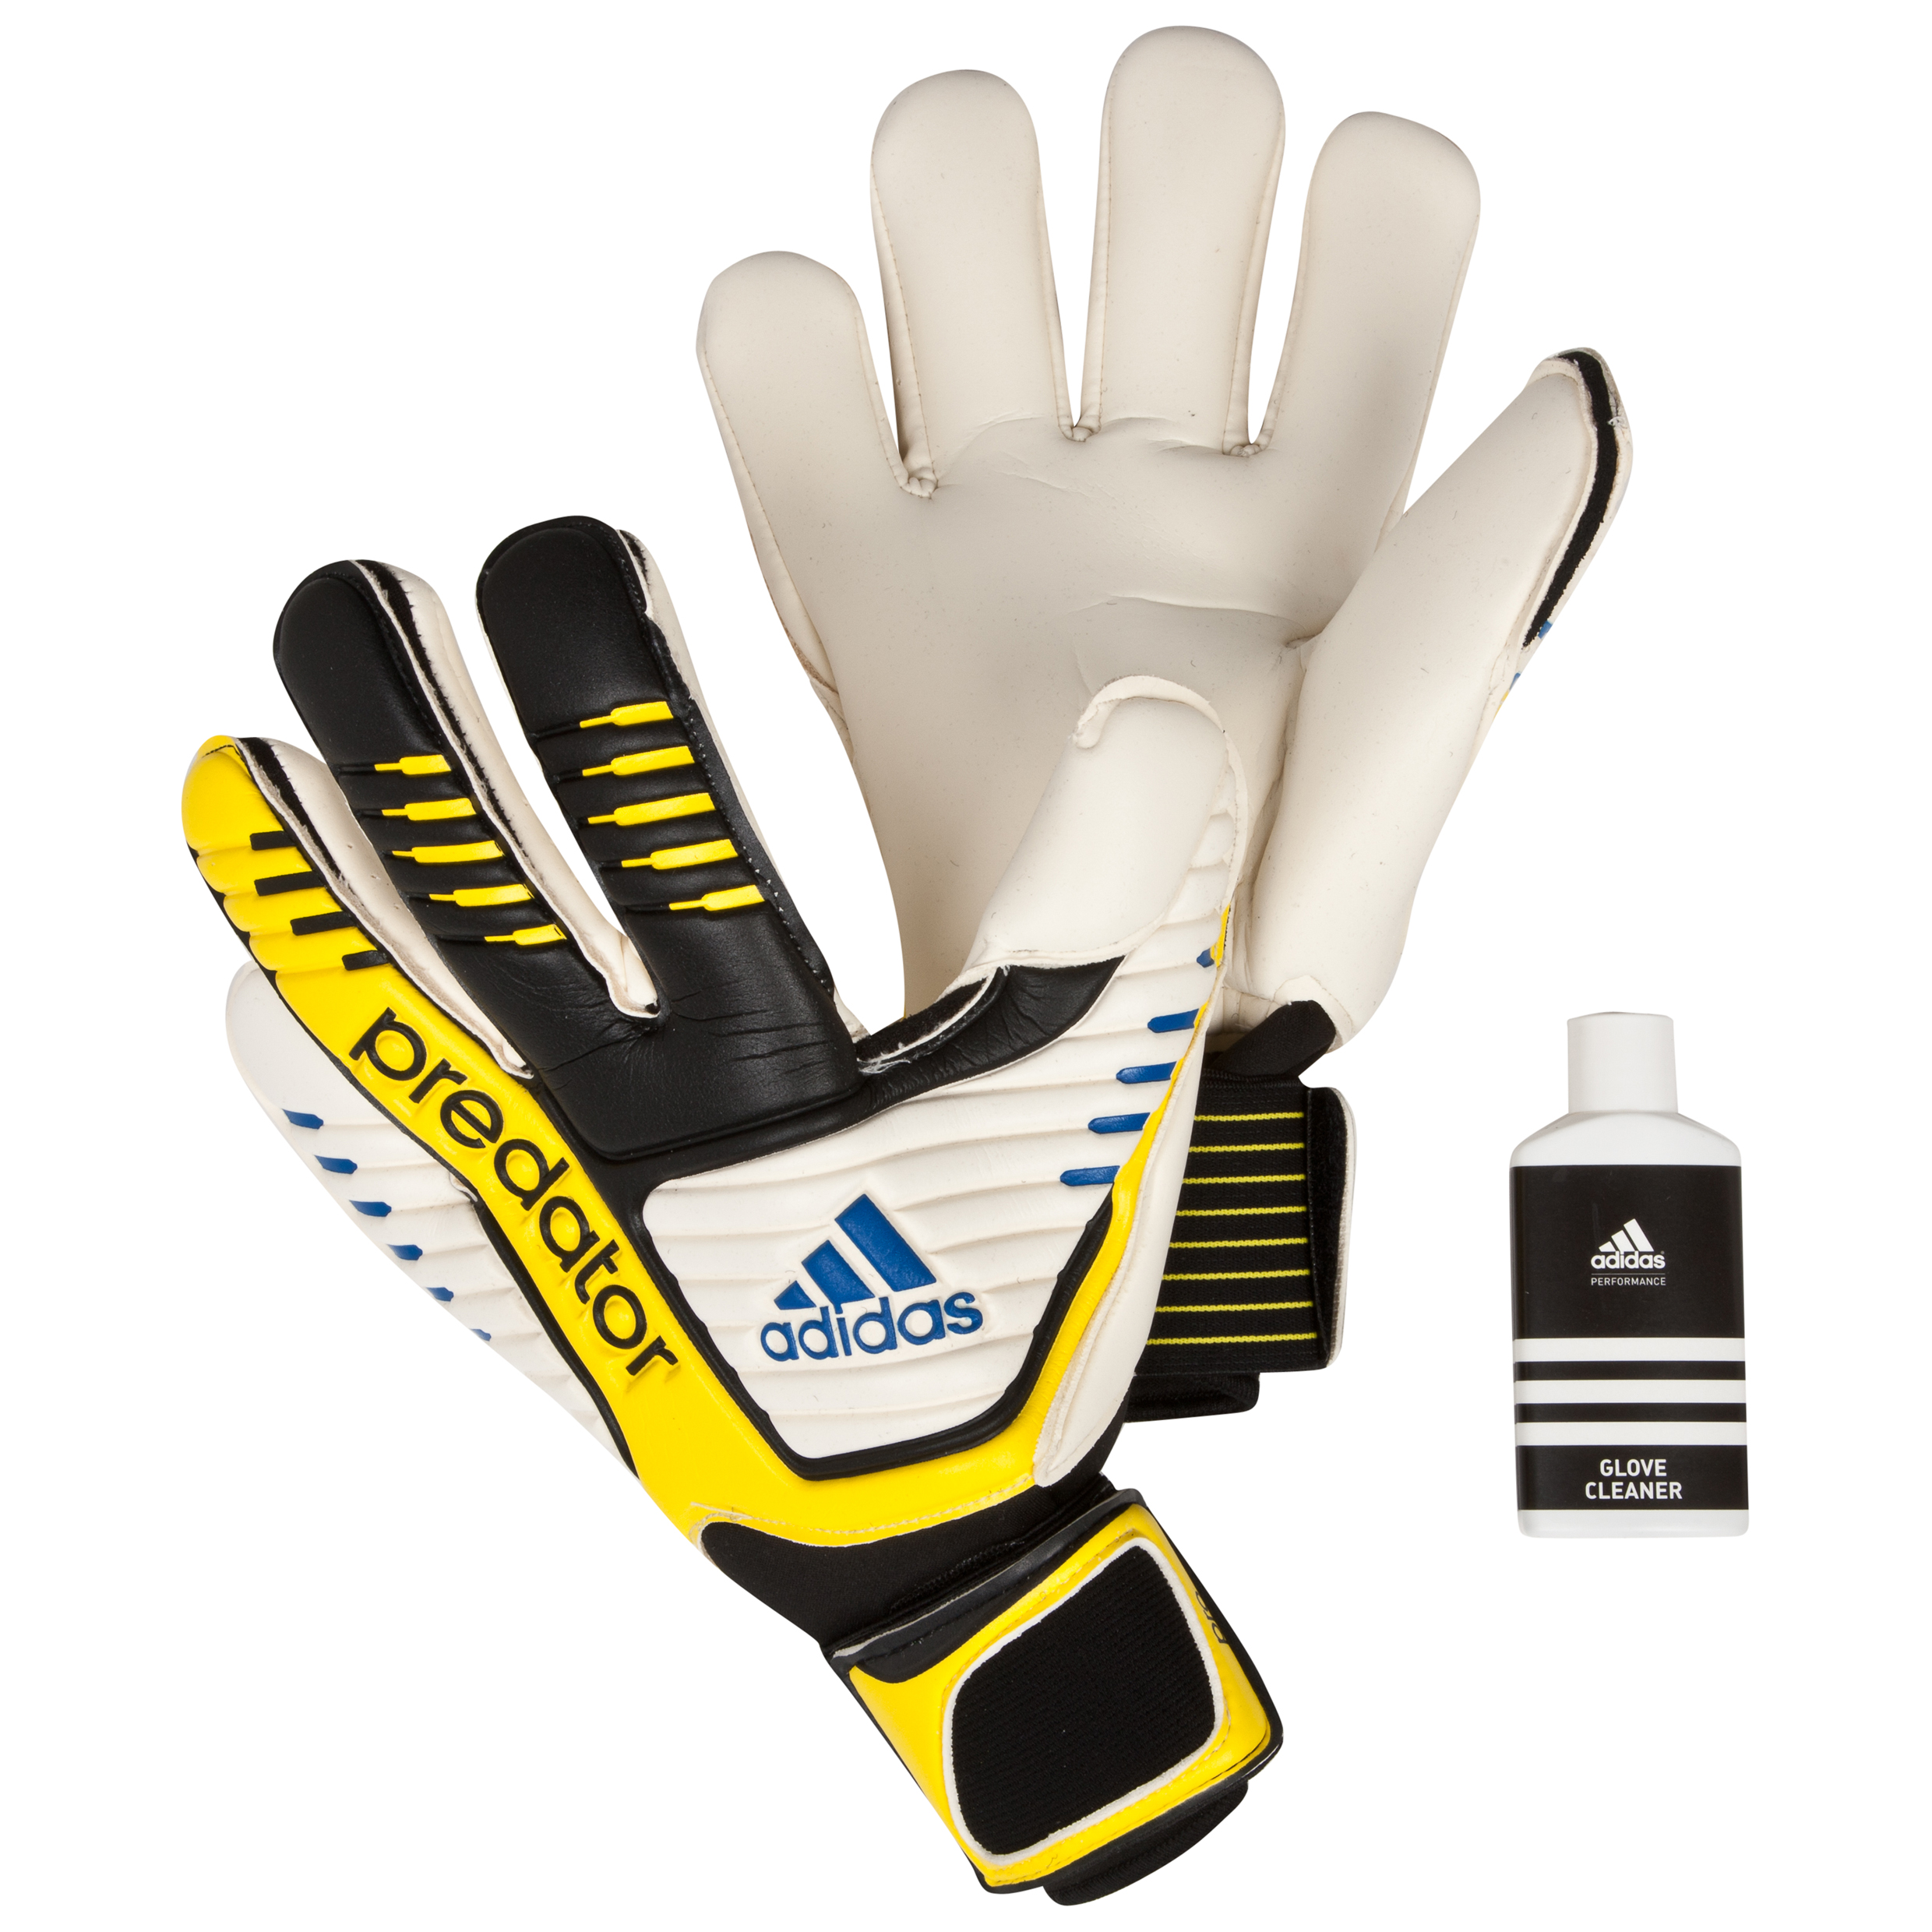 adidas Predator Pro Goalkeeper Gloves - Black/White/Vivid Yellow /Prime Blue